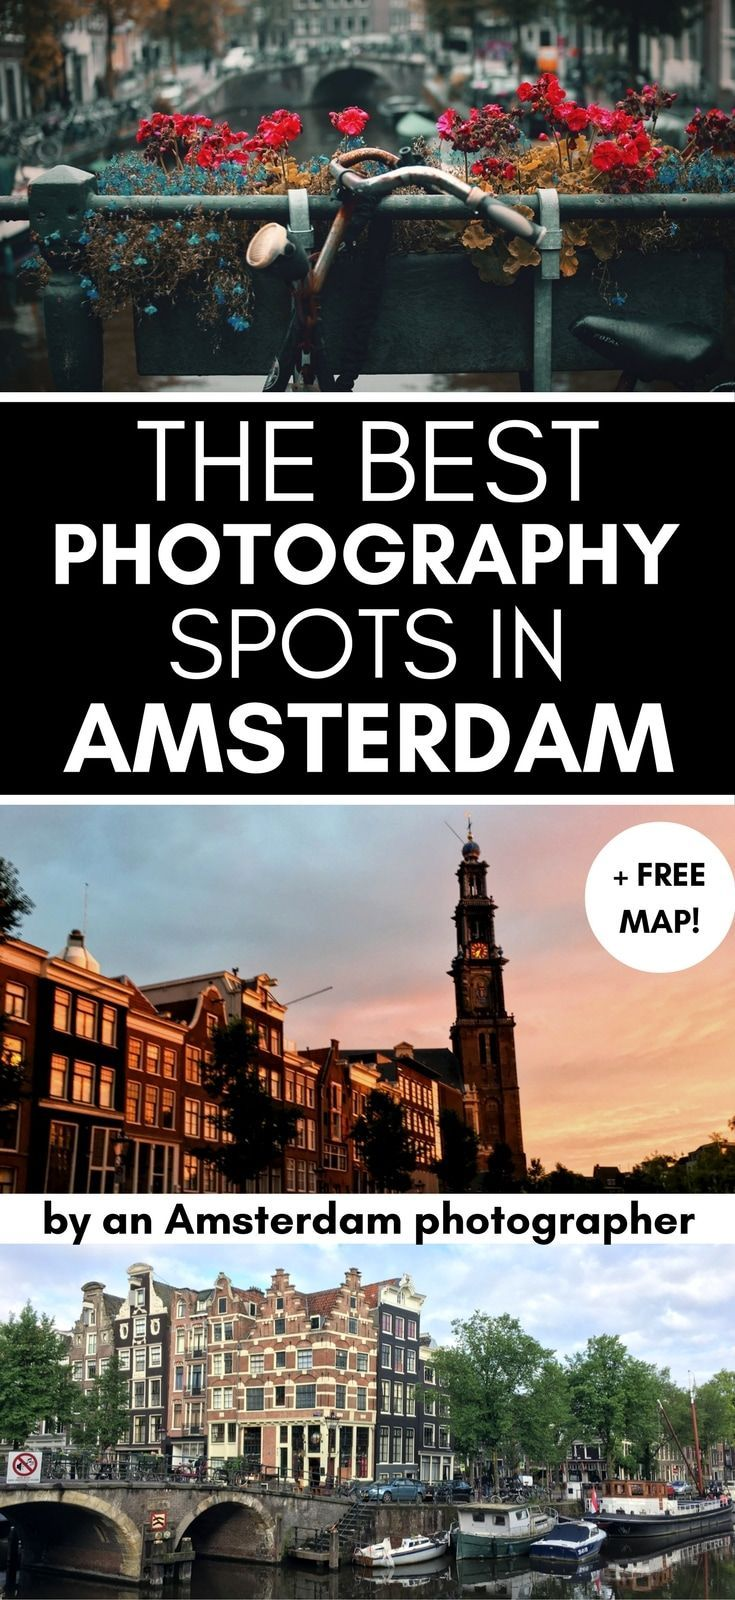 Best Amsterdam Photography Spots by a Local